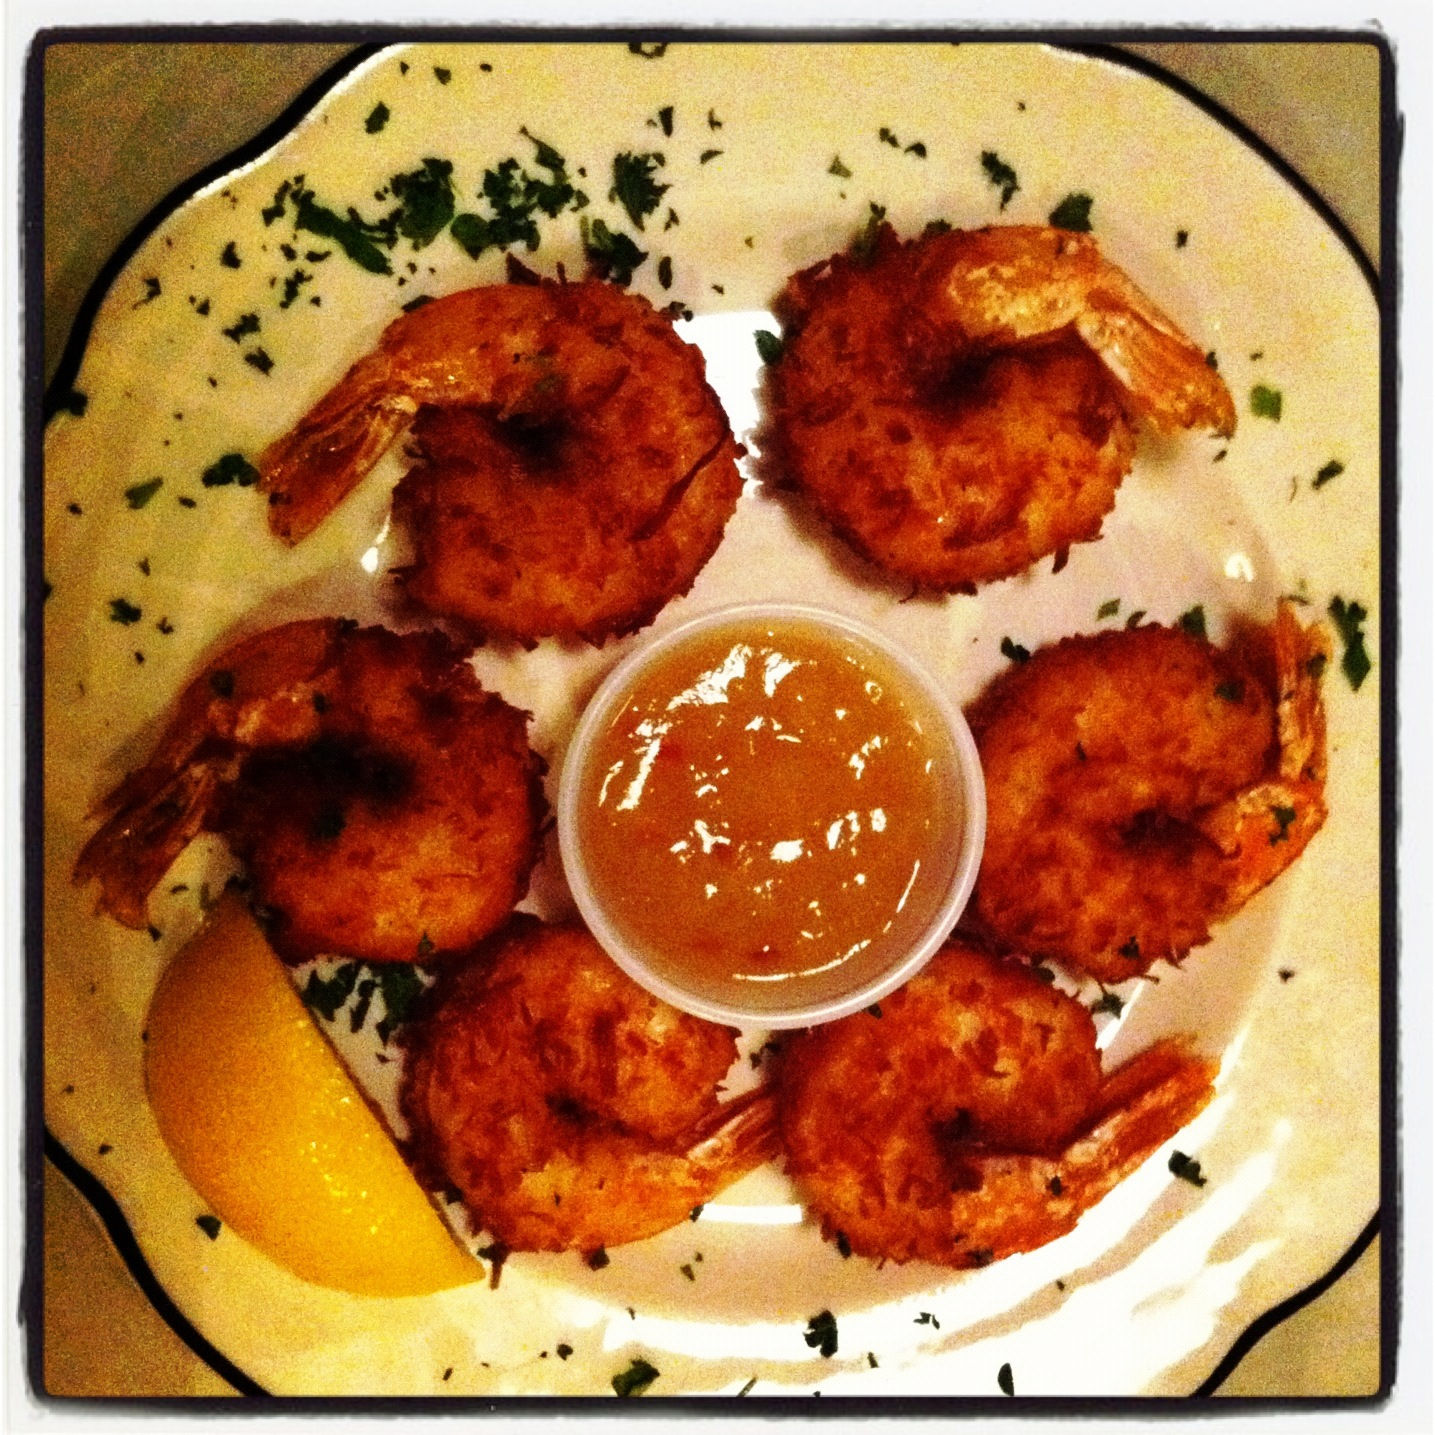 Coconut Fried Shrimp at Cap'n and the Cowboy, Port Charlotte, Fla.